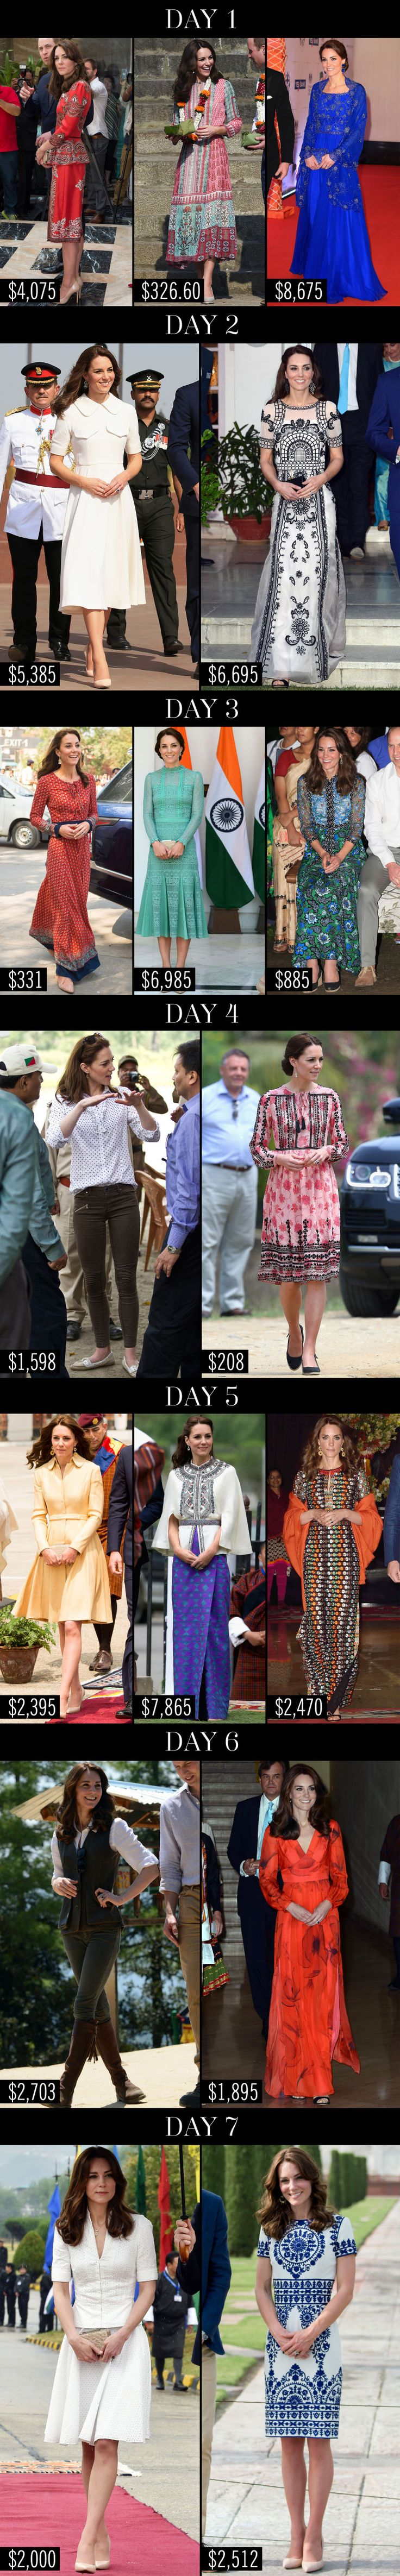 Here's How Much Kate Middleton Spent on Her India Tour 2016 Wardrobe